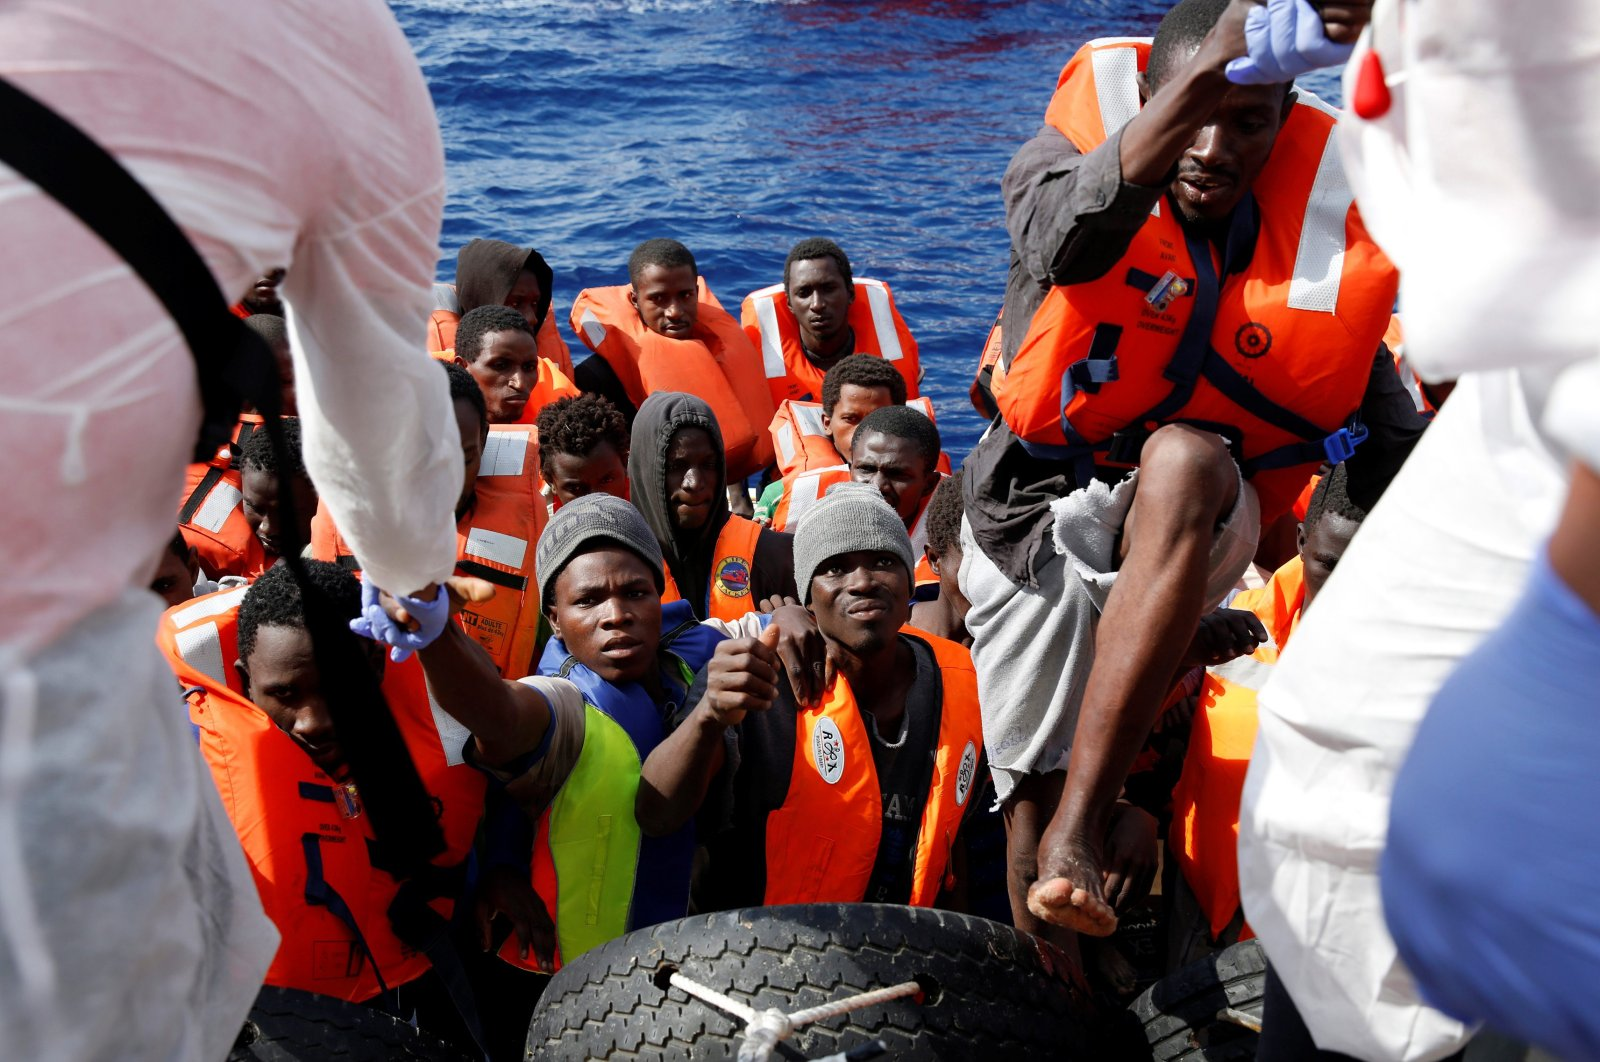 Migrants in a dinghy climb aboard the Migrant Offshore Aid Station (MOAS) ship Topaz Responder around 20 nautical miles off the coast of Libya, June 23, 2016. (Reuters Photo)